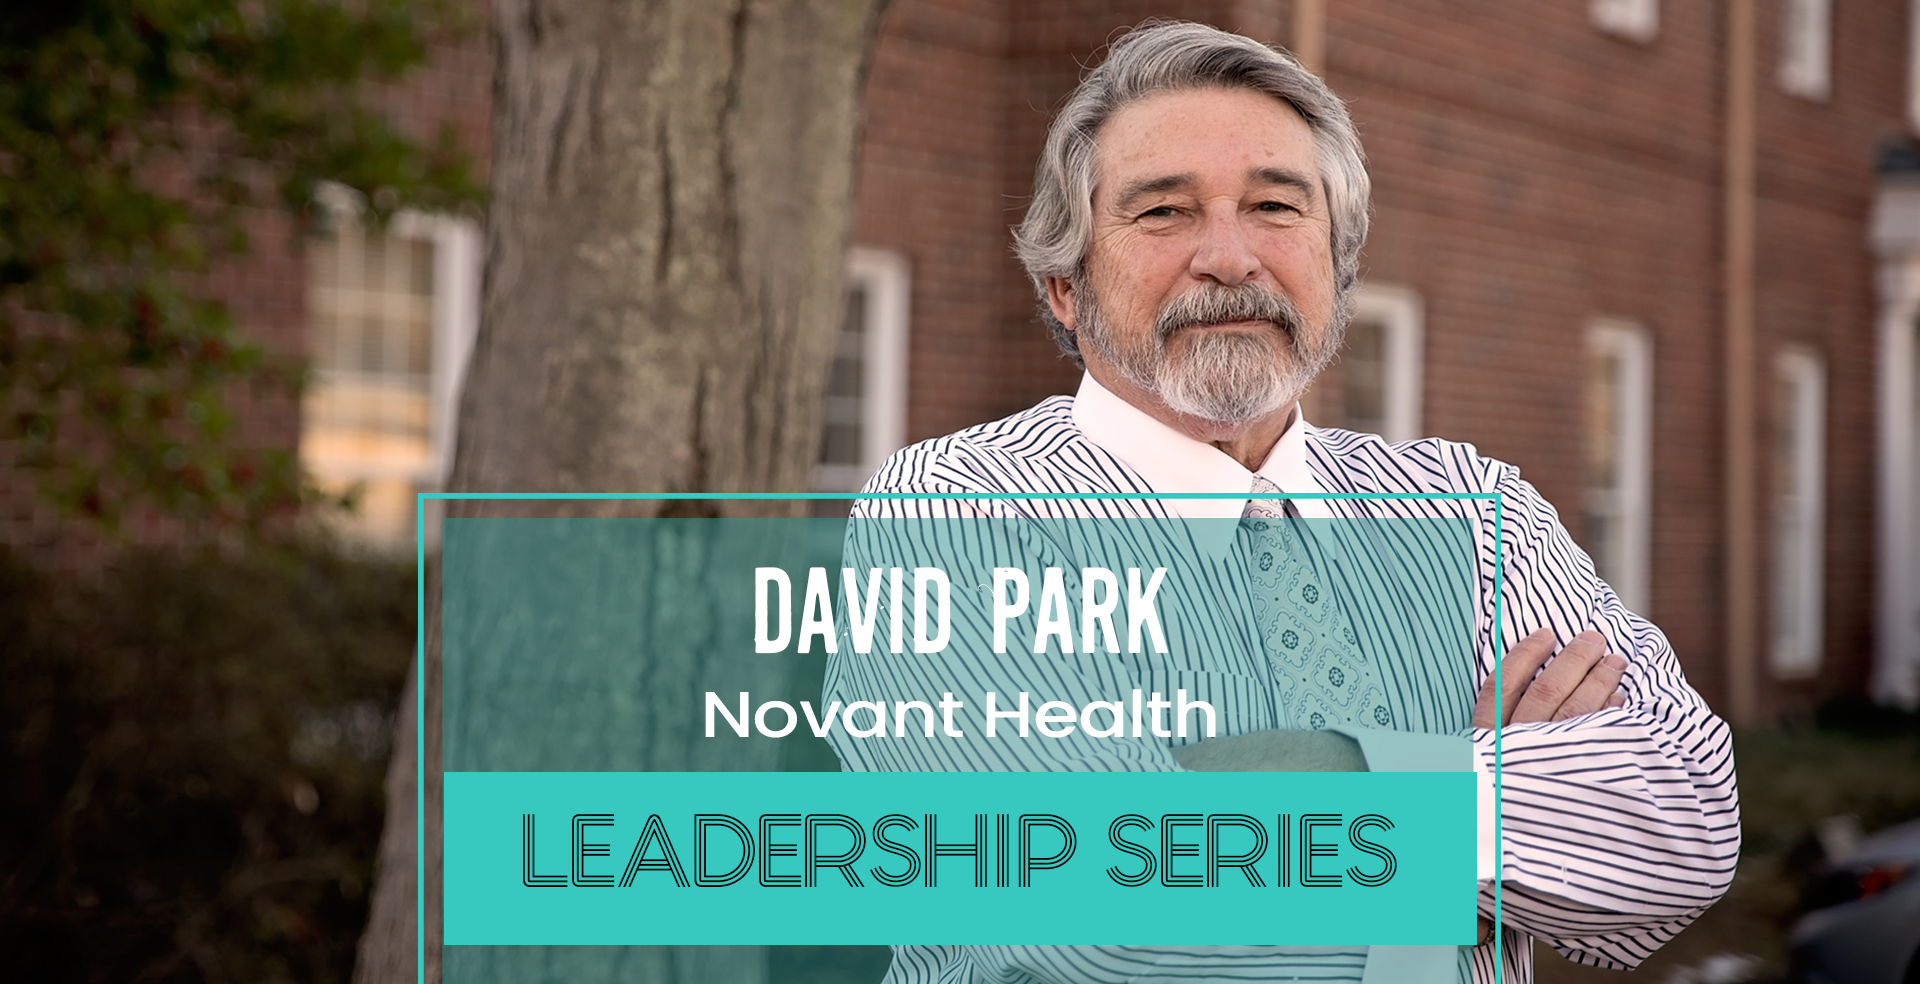 David-Park-HealthSpaces